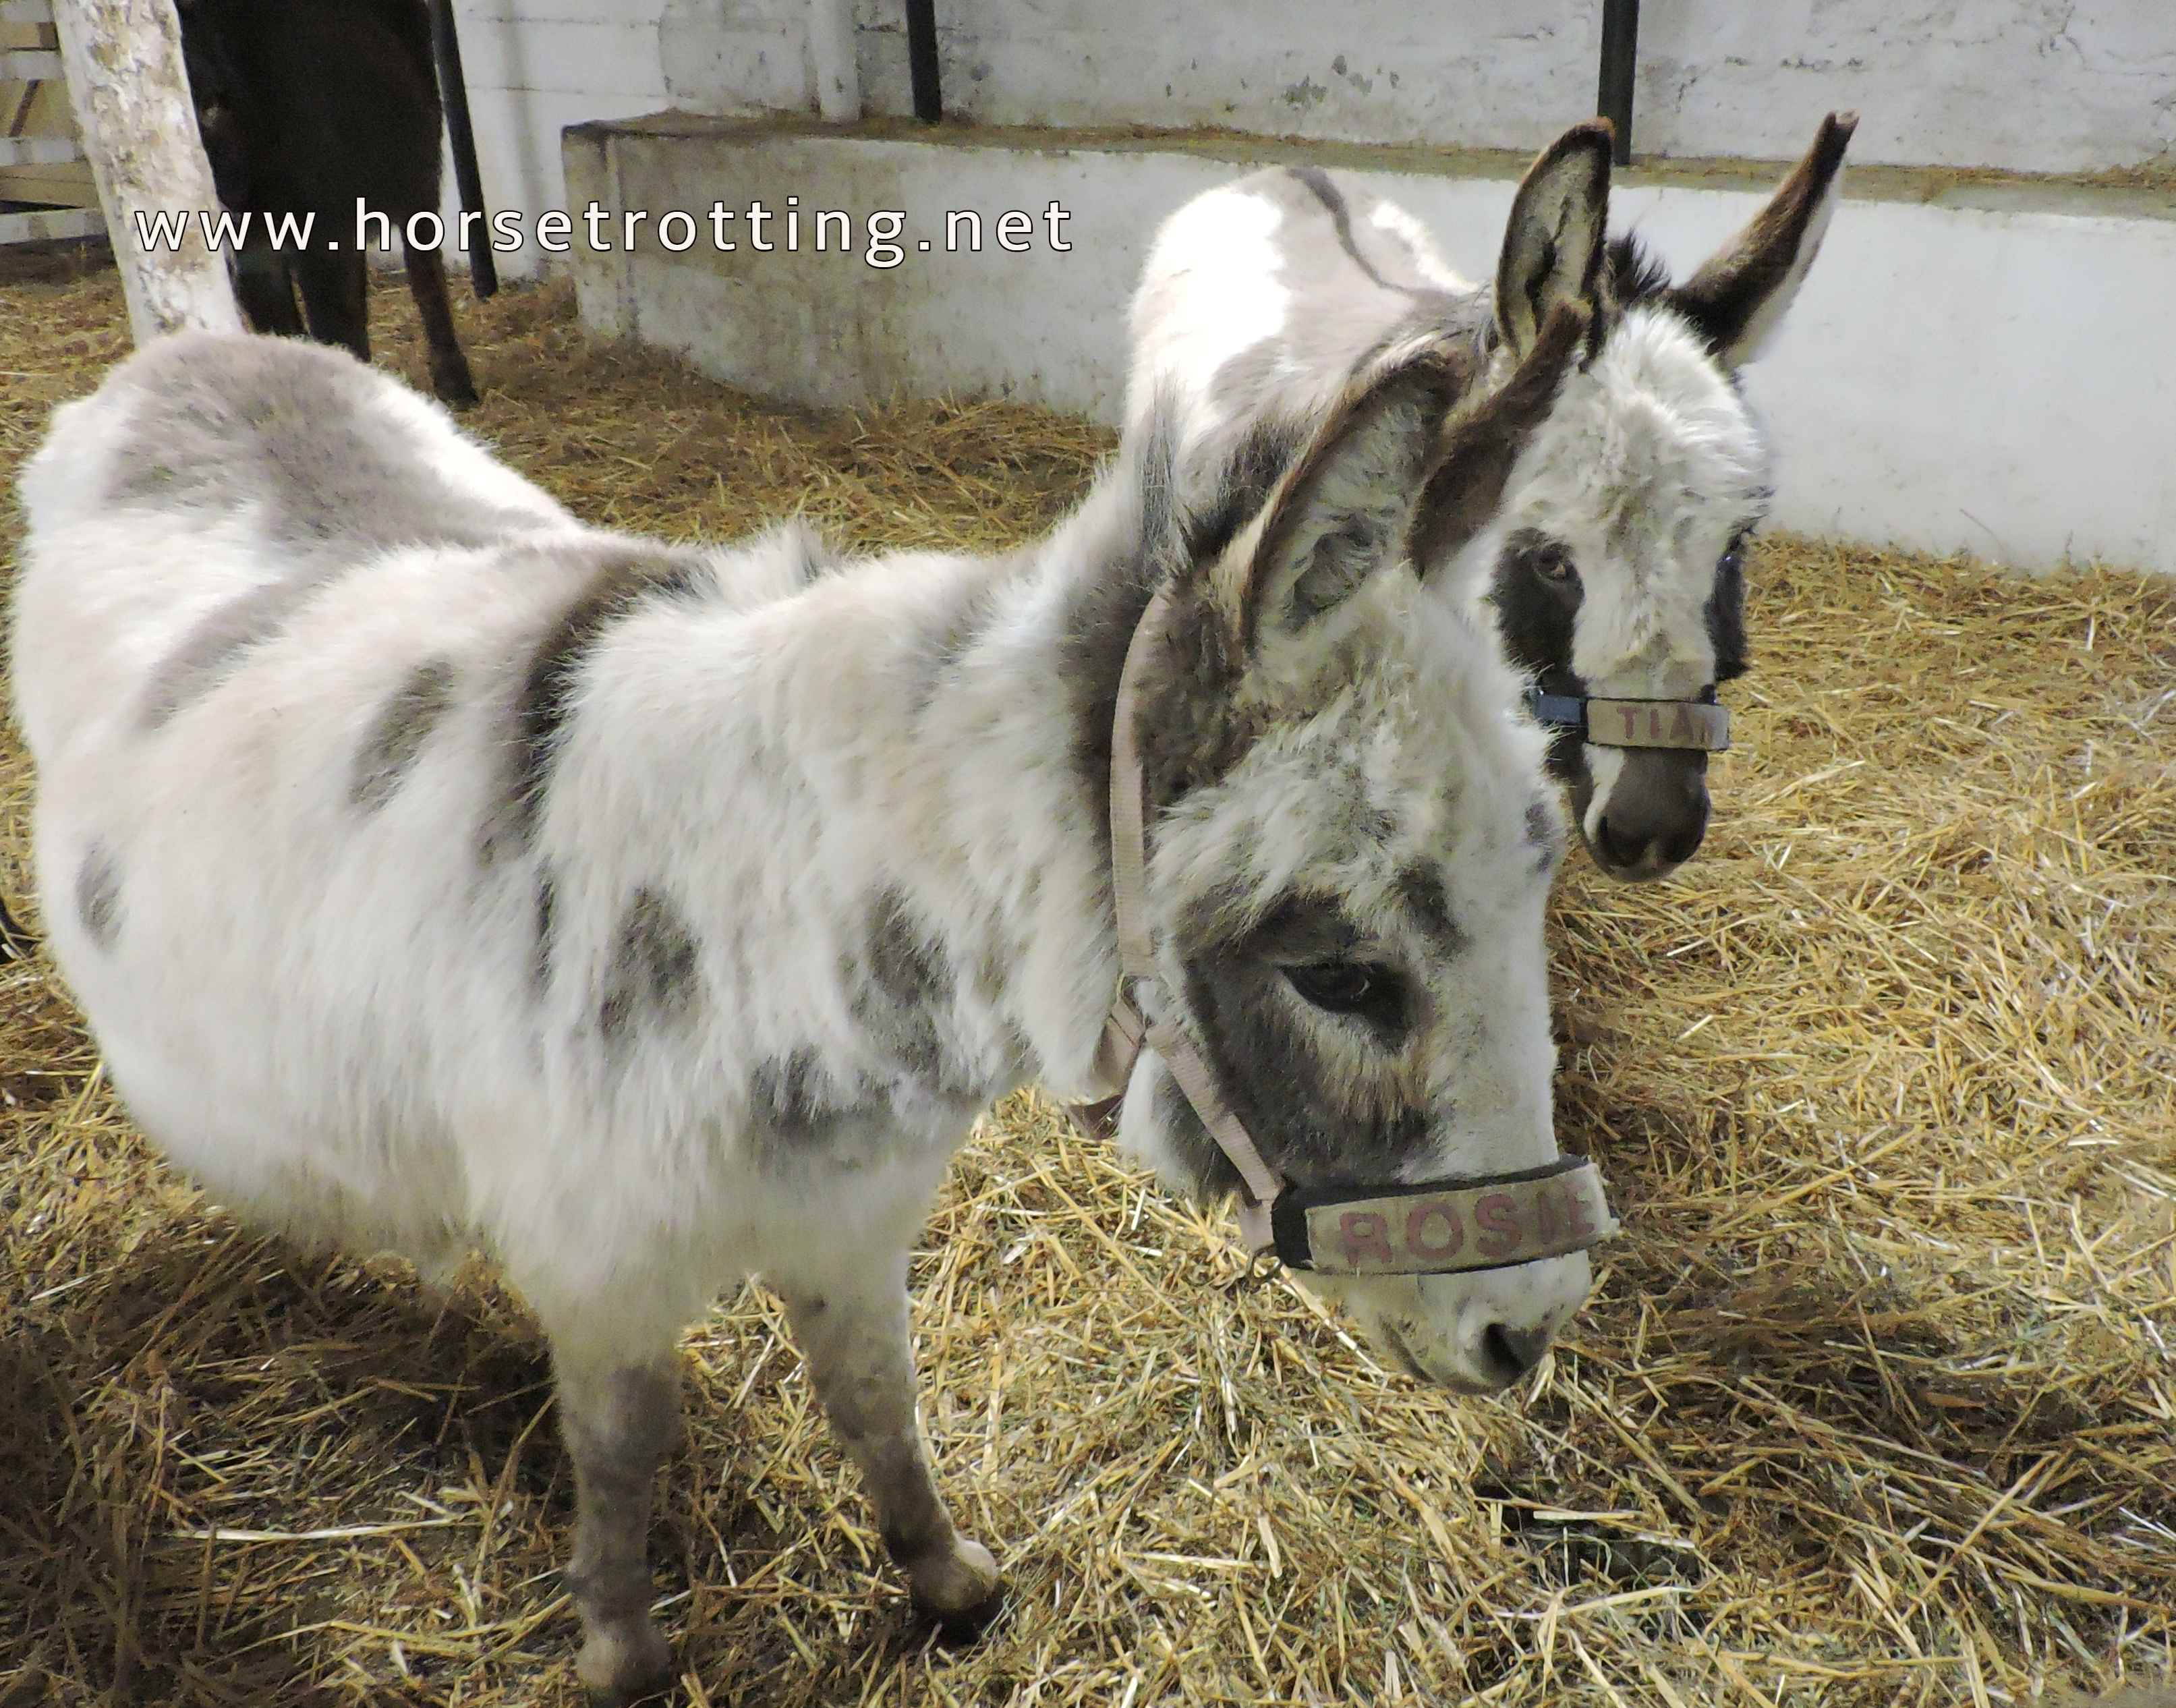 donkeys at PrimRose Donkey Sanctuary, Canada